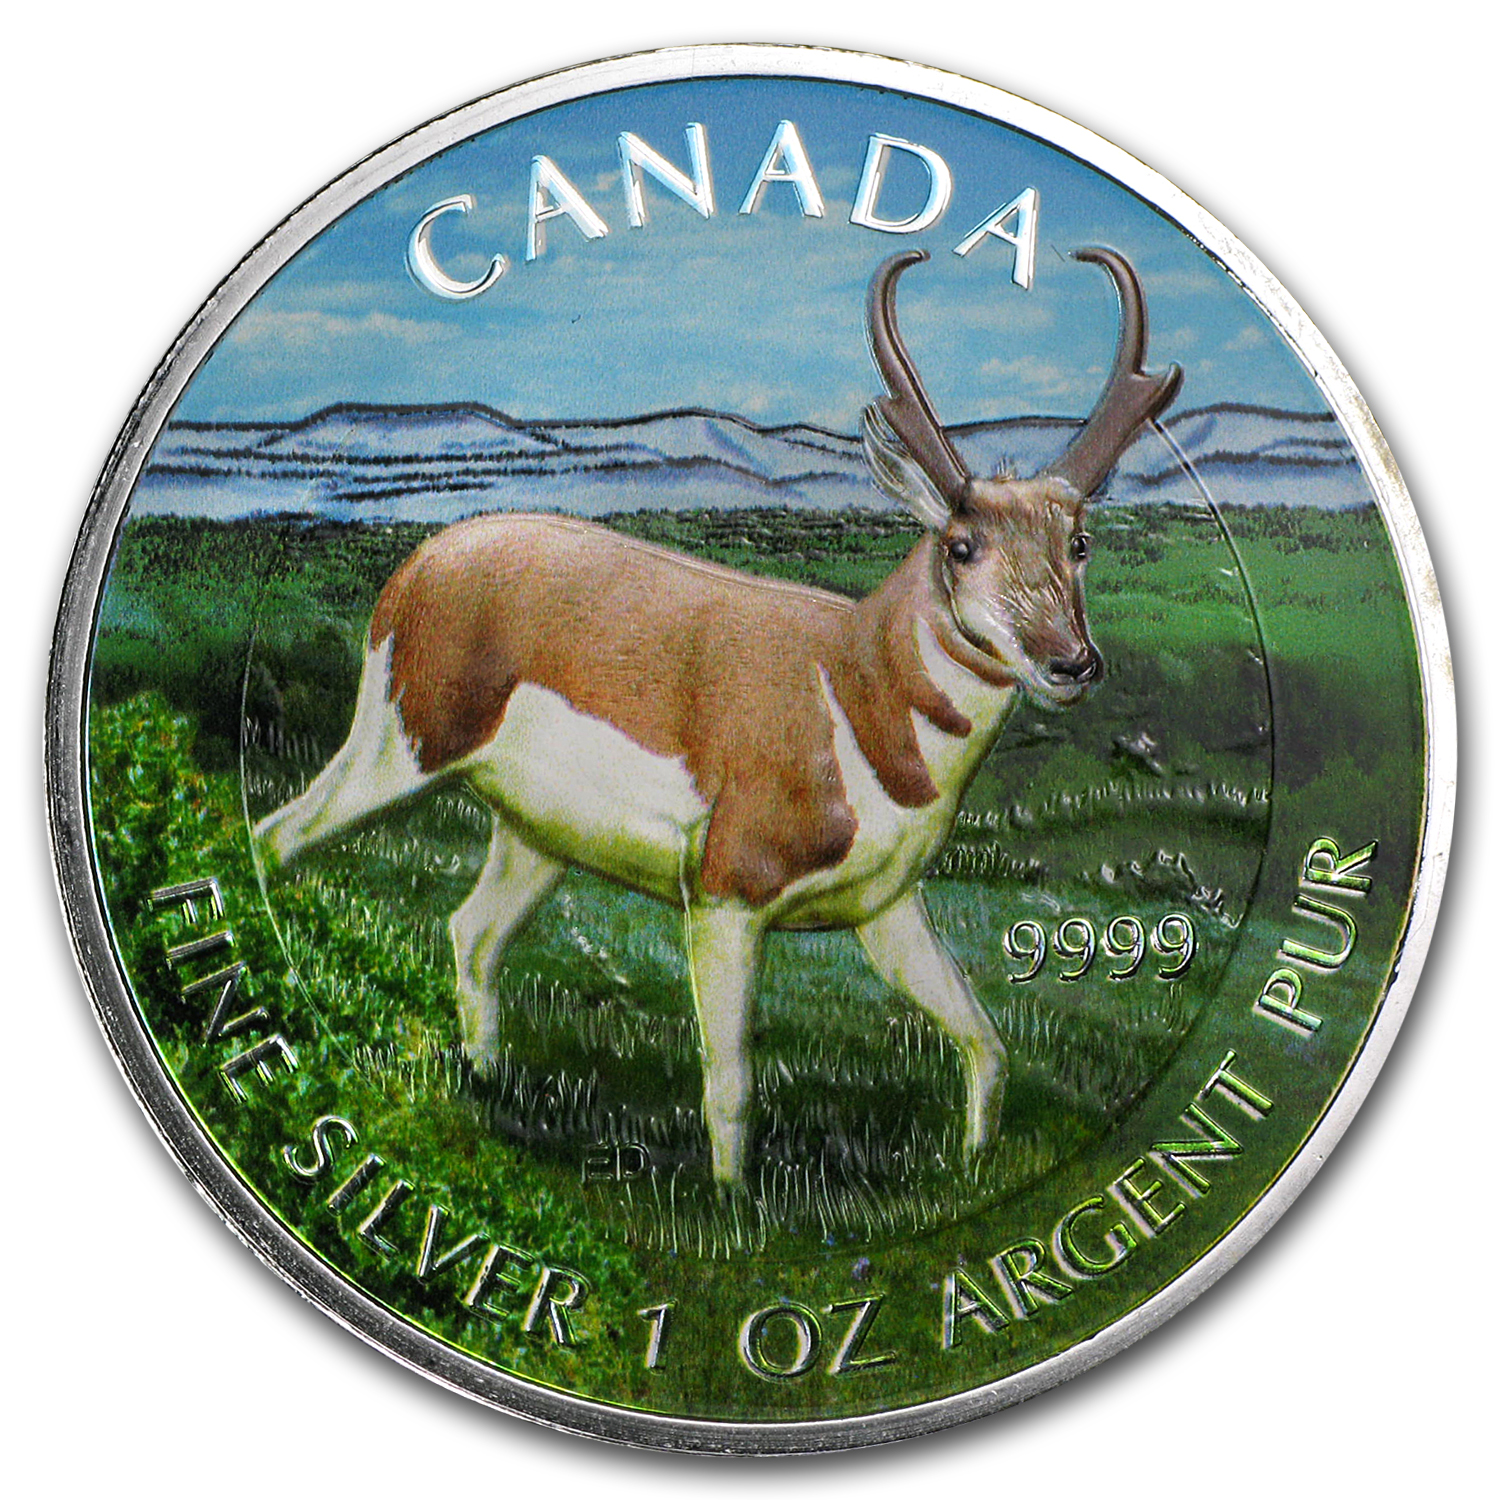 2013 Canada 1 oz Silver Wildlife Series Antelope (Full Color)